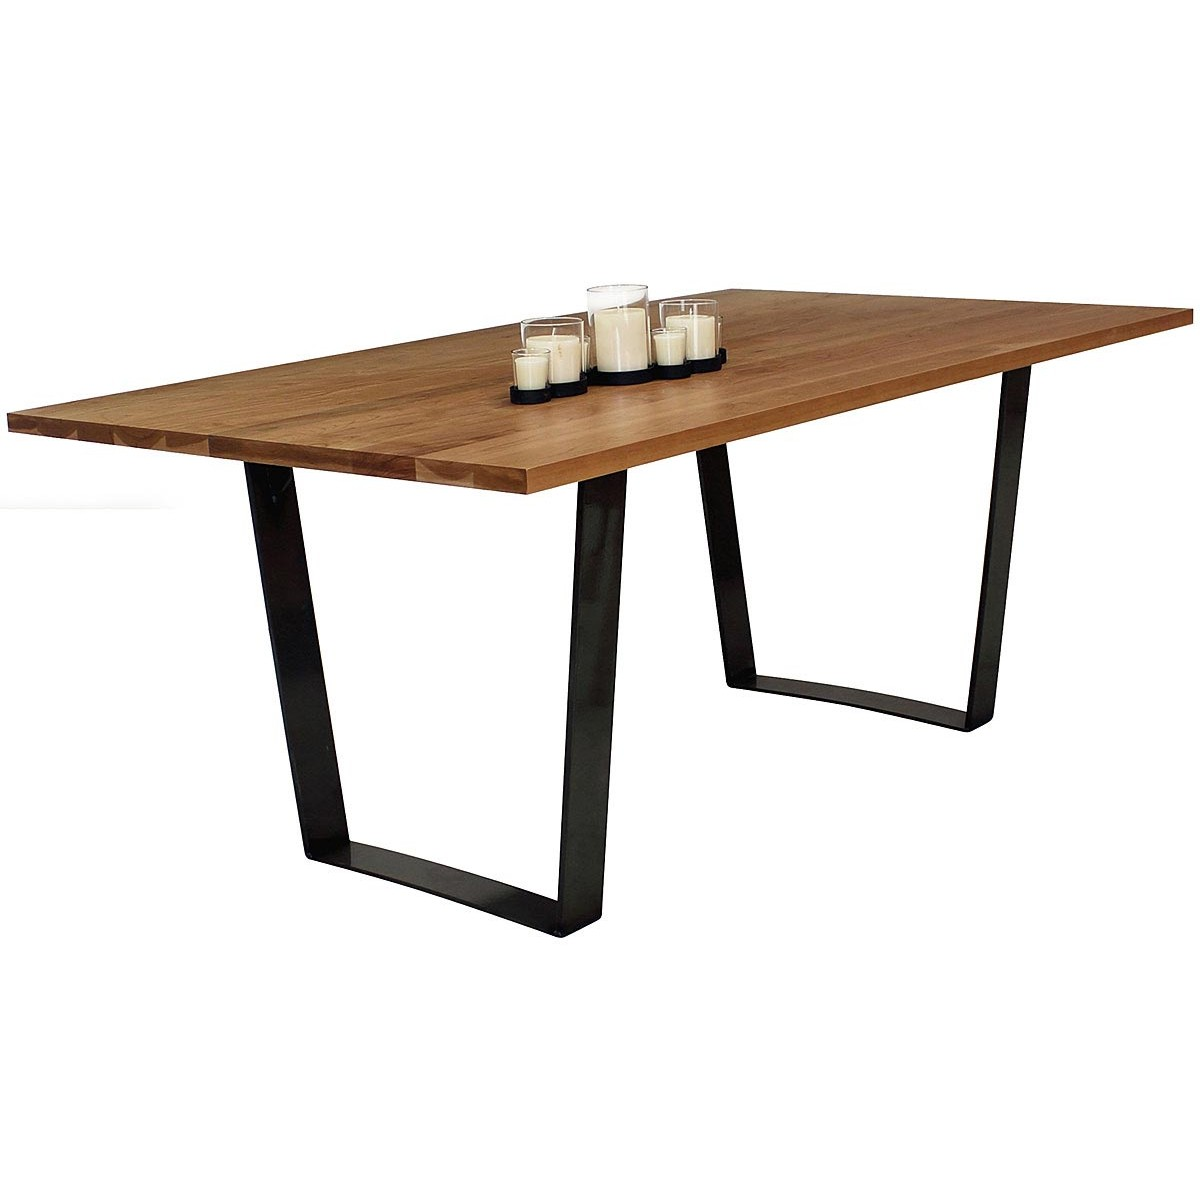 Lyndon Vergennes Dining Table 36x72 From 1 749 00 By Lyndon Danco Modern